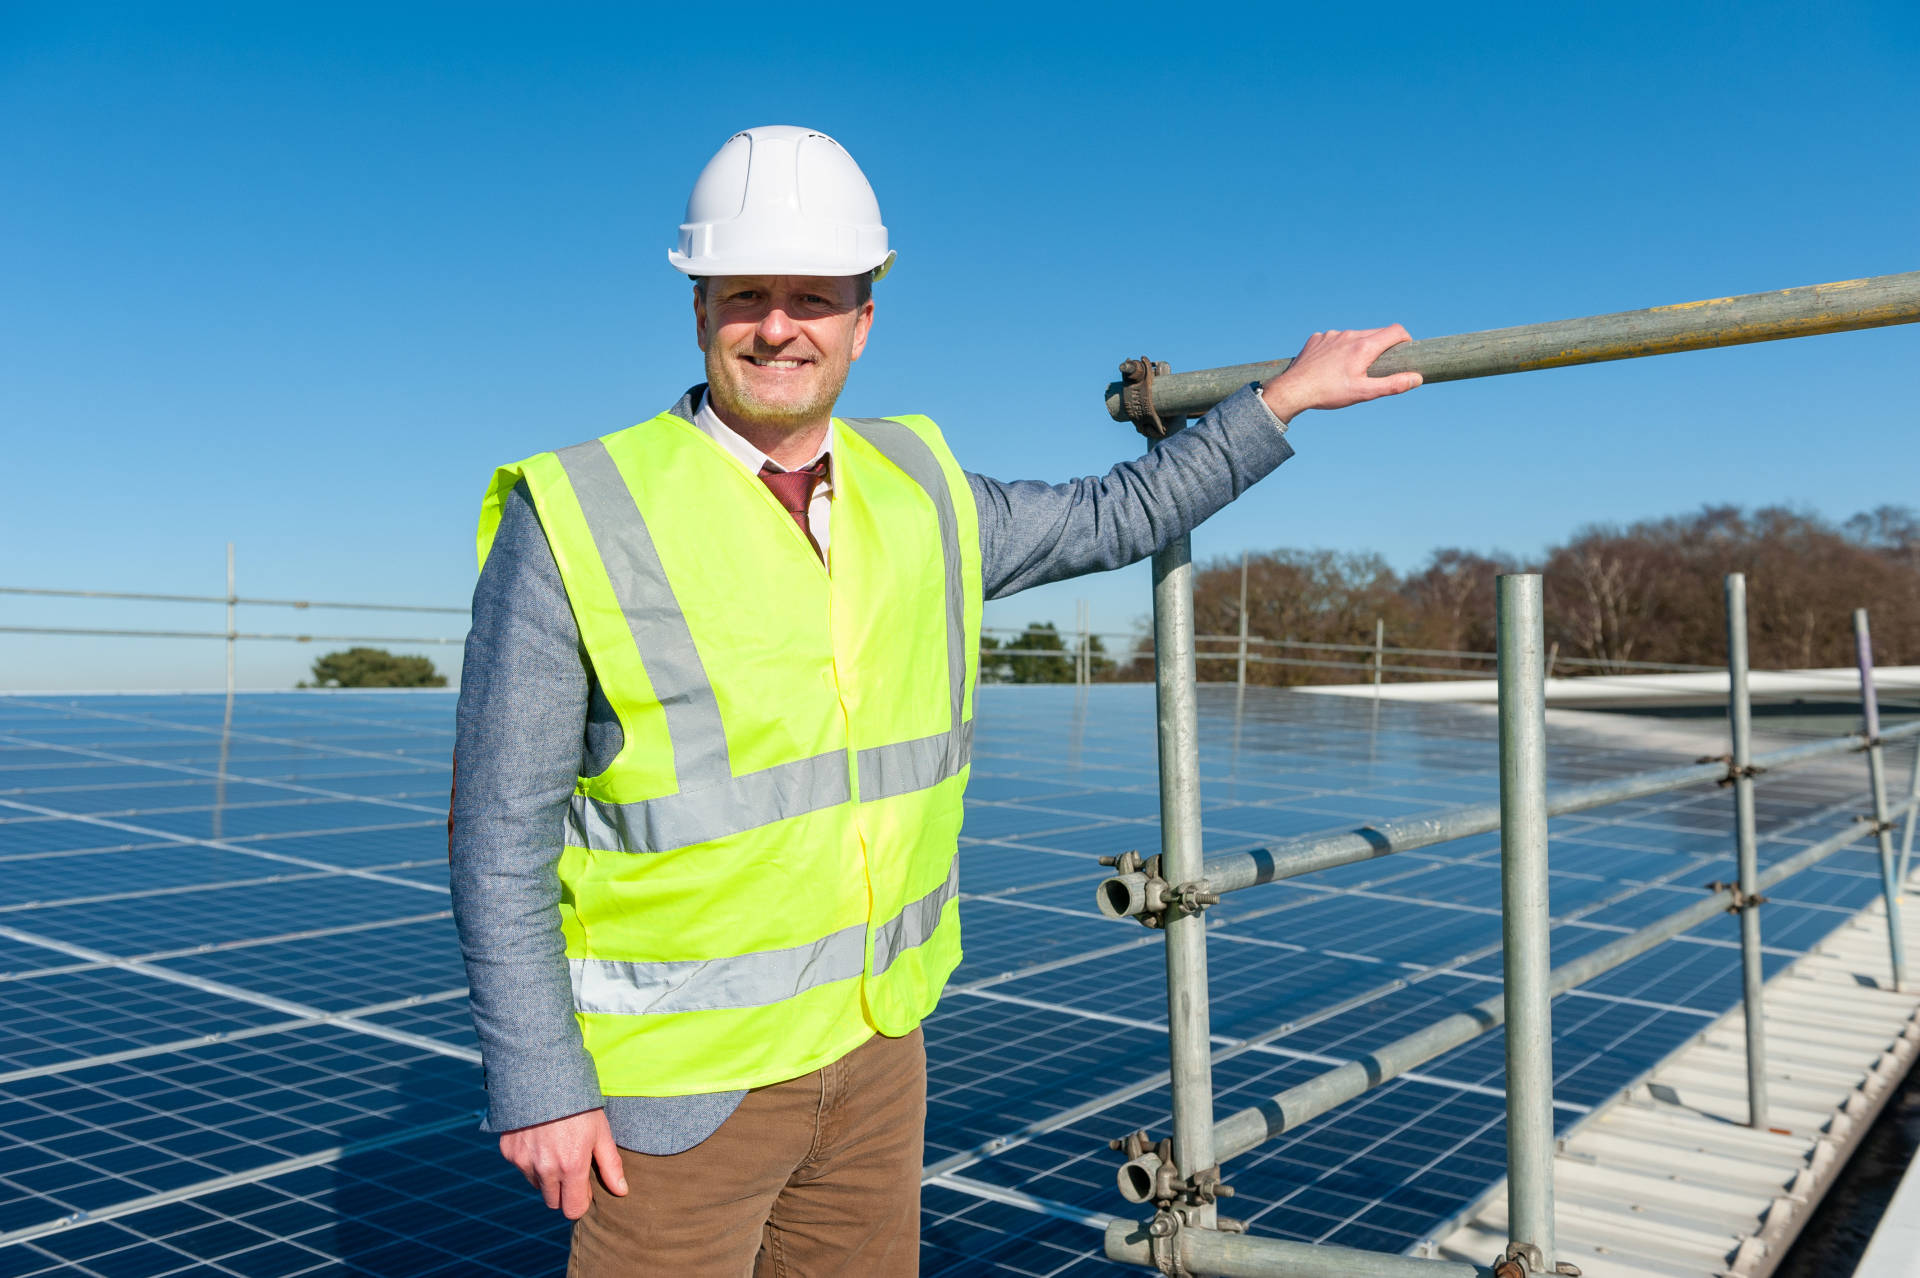 Paul Farrer with Solar Panels